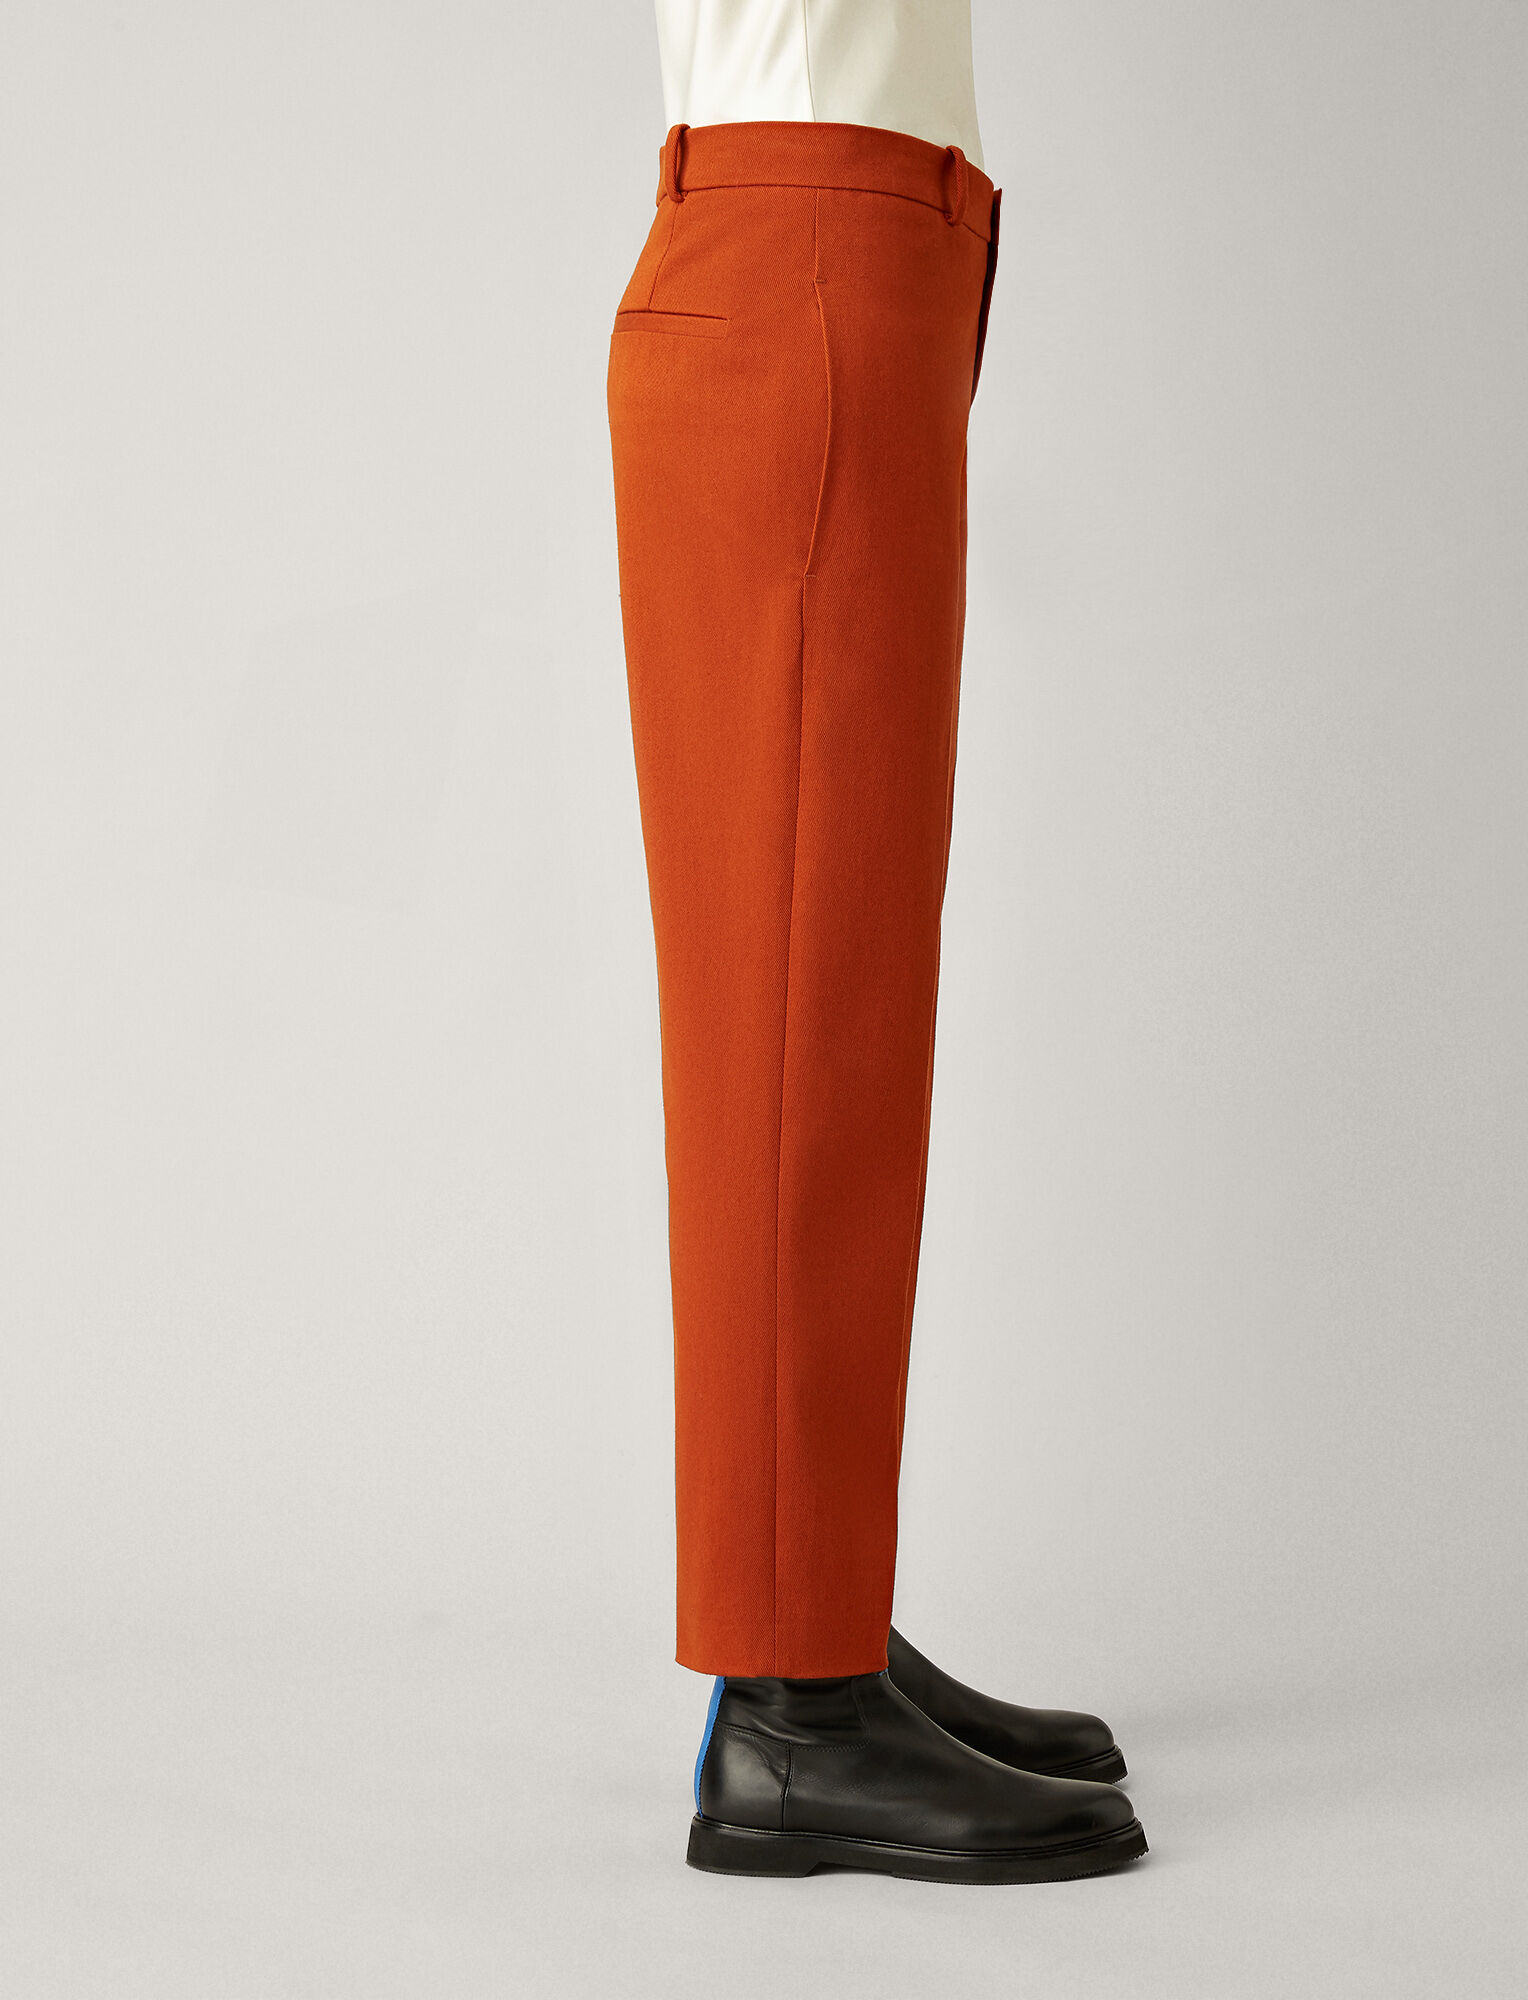 Joseph, Coman Drill Stretch Trousers, in TAN